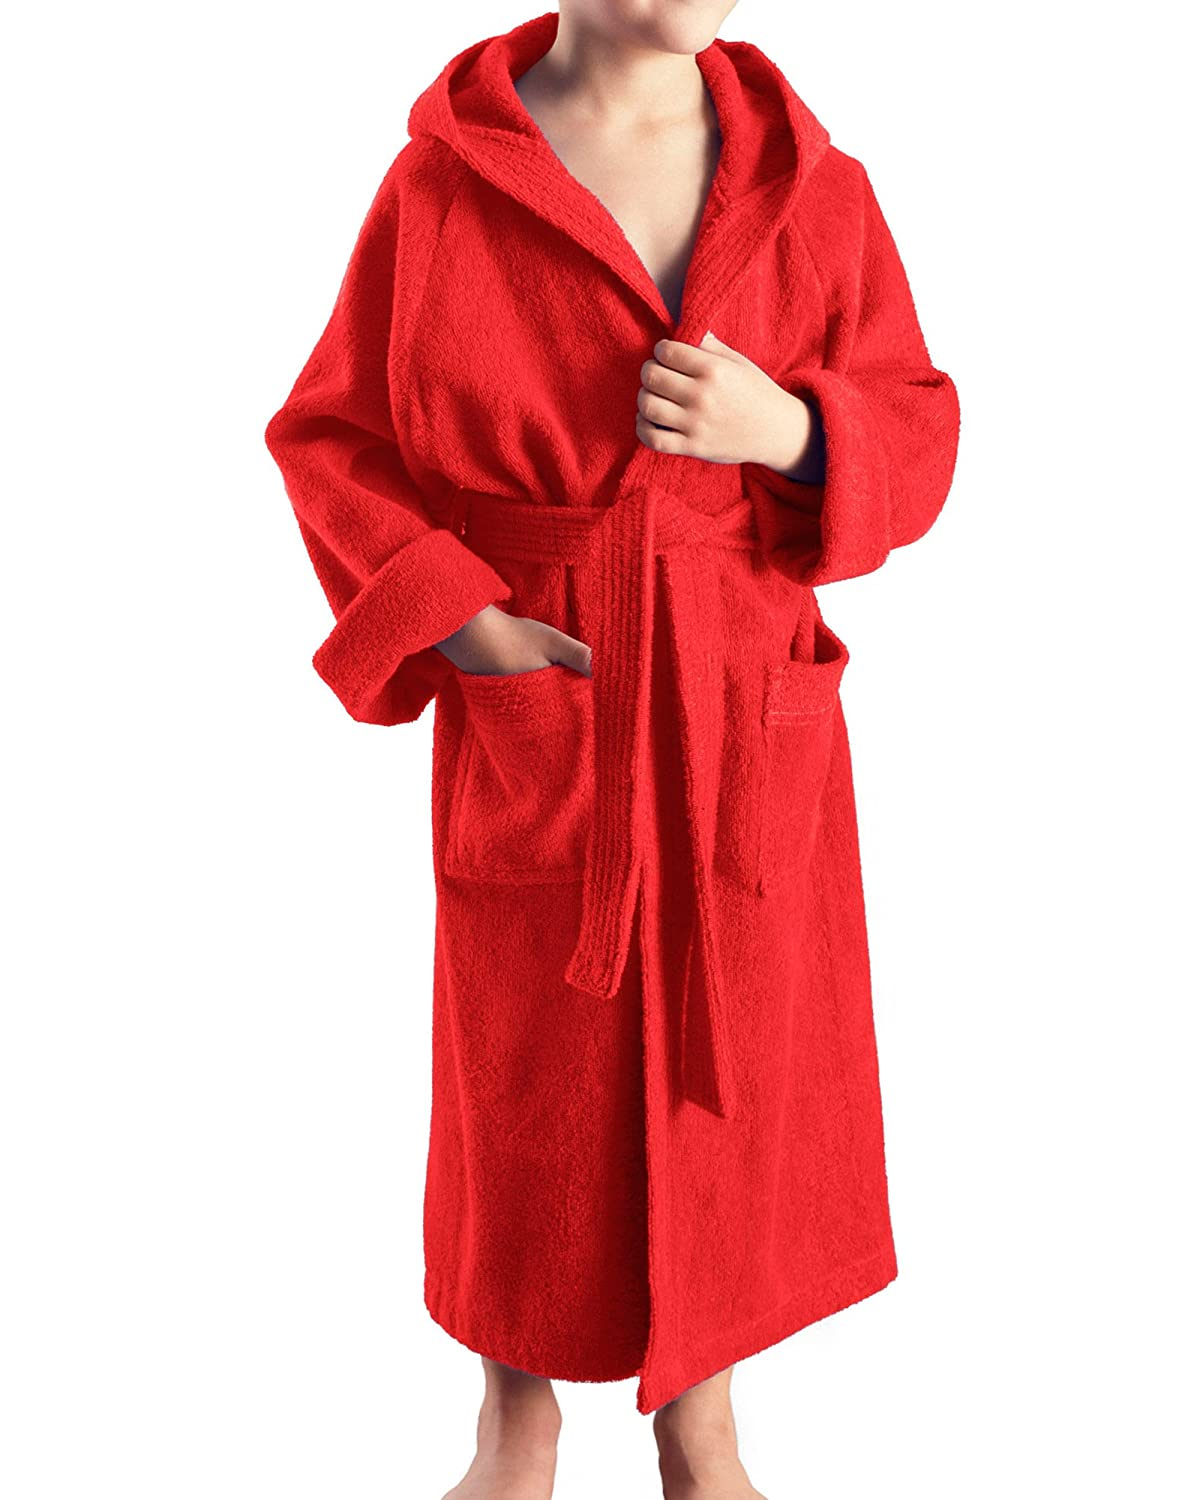 Arus Child's Hooded Bathrobe to Fit Boys and Girls, 100% Terry Cotton, 10 oz/yd2 (350 g/m)